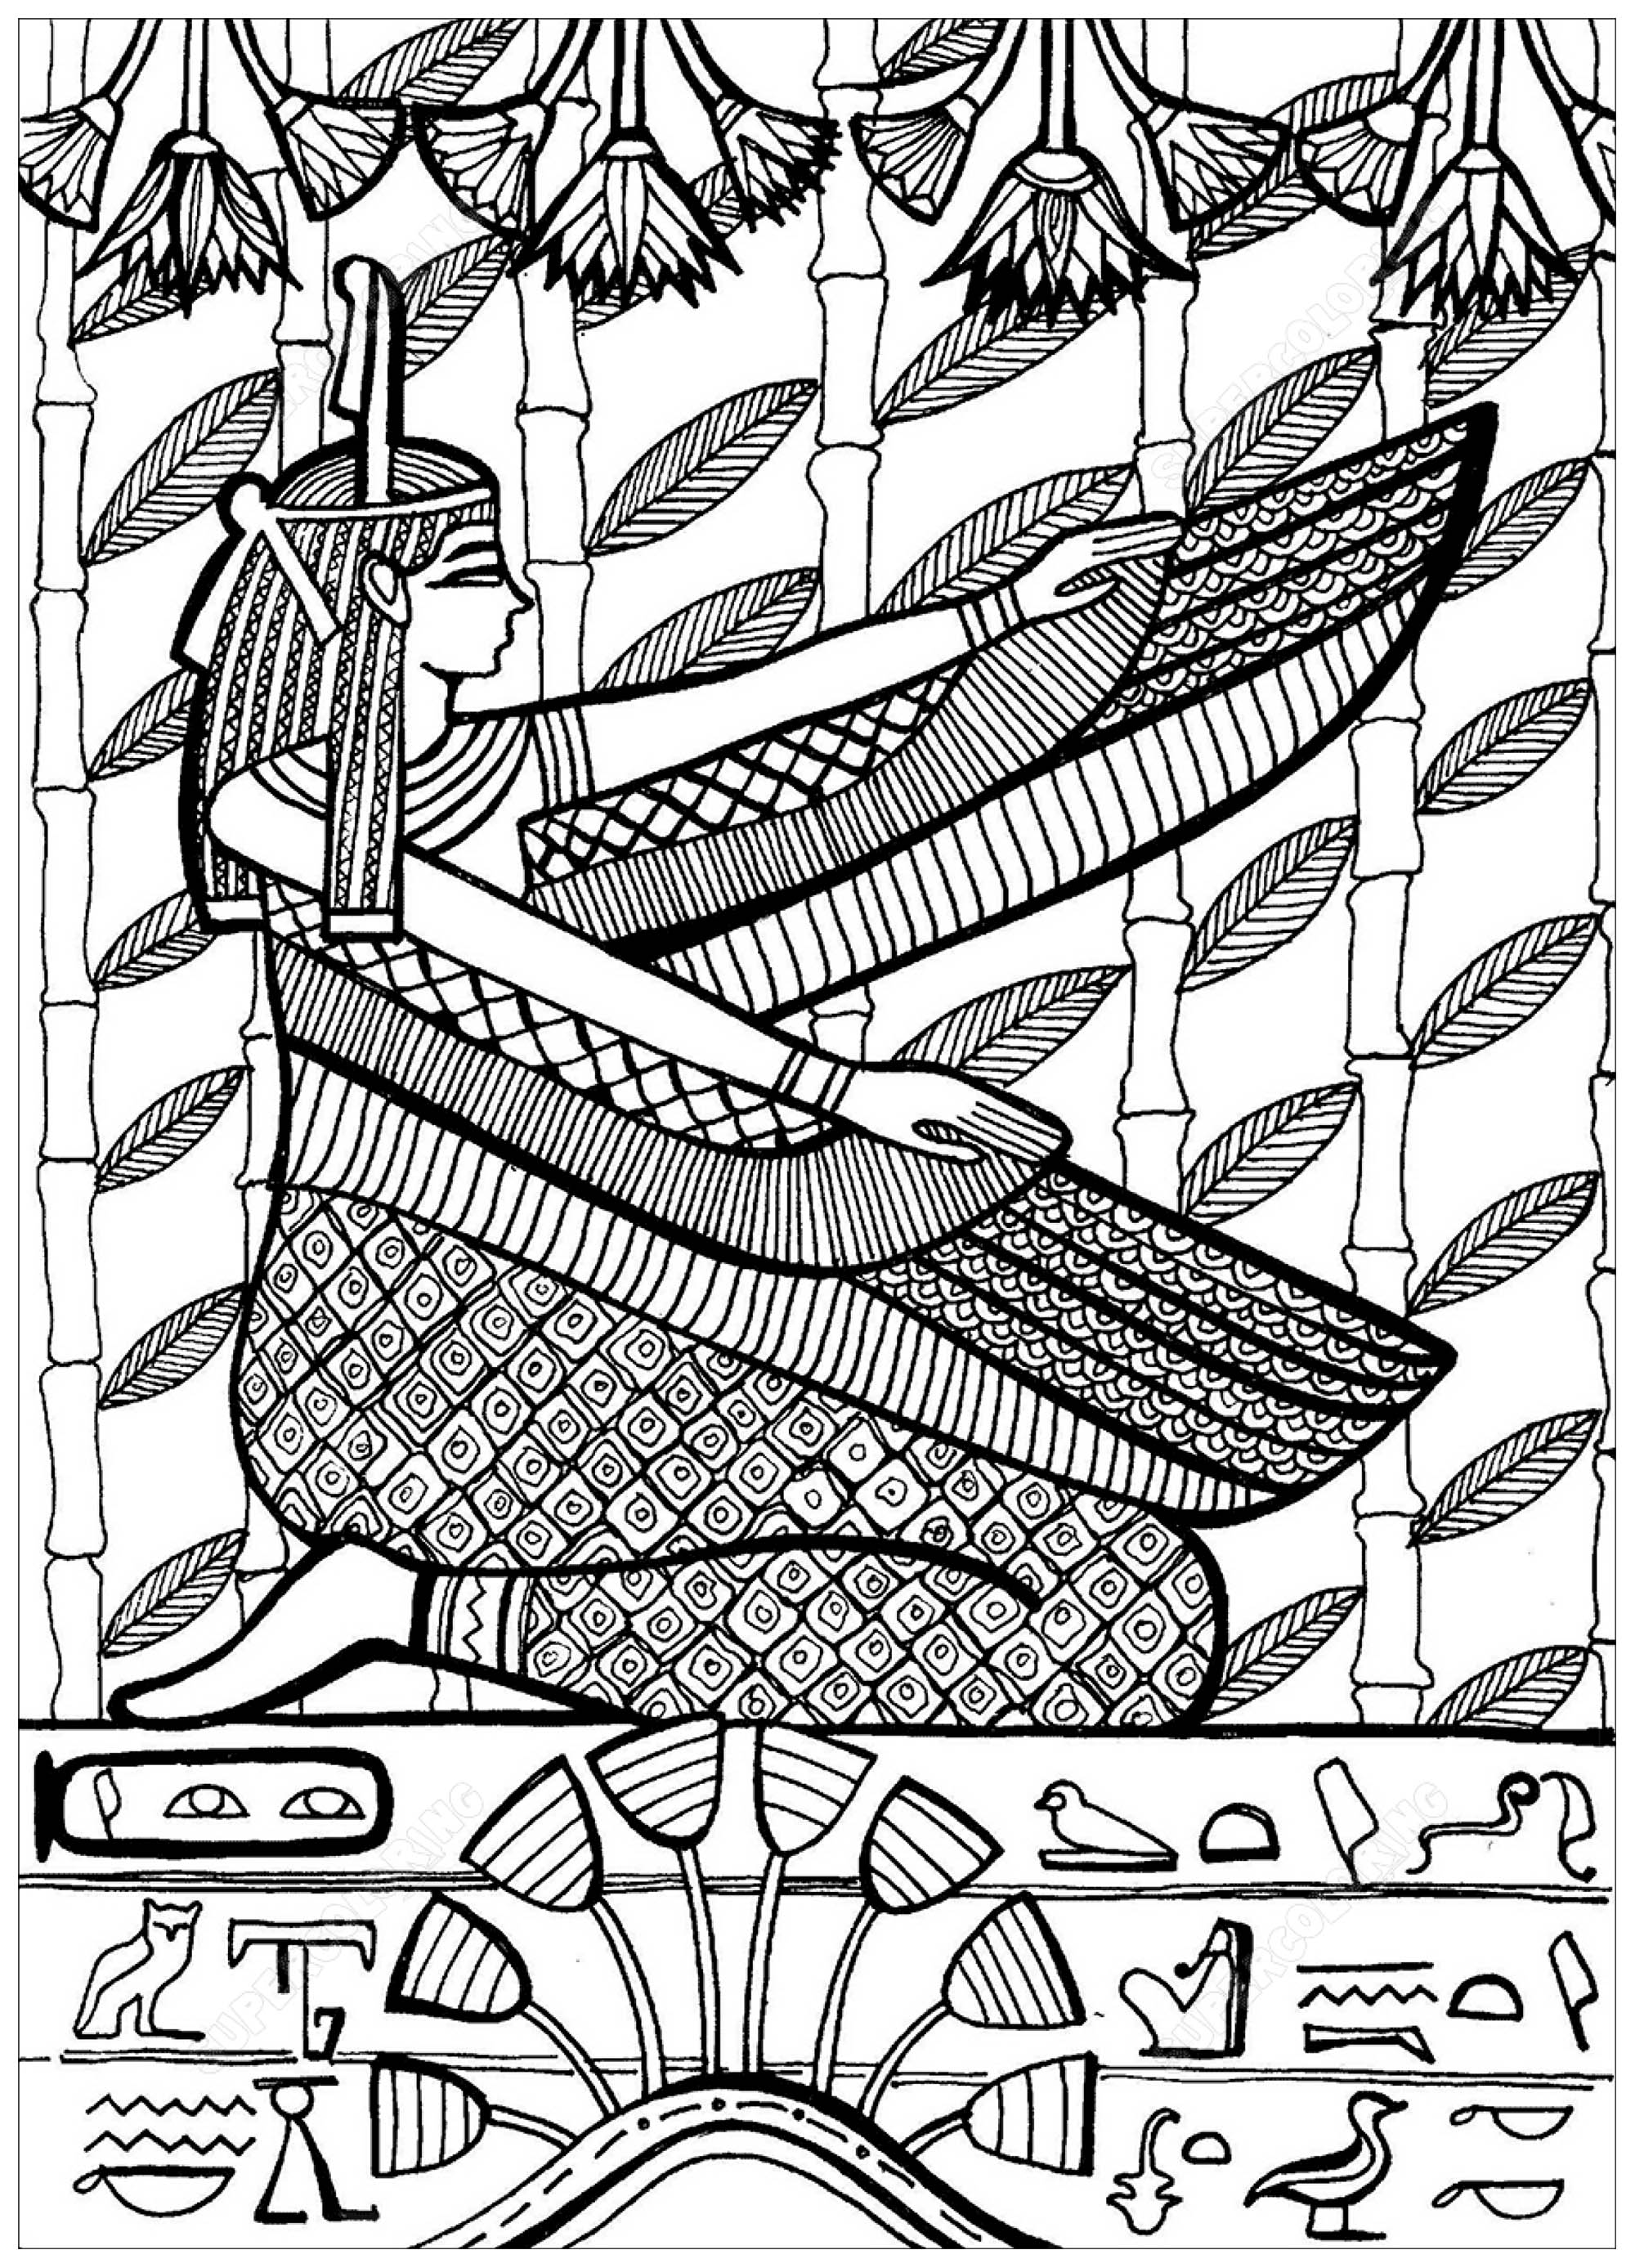 High priest of Ptah, the patron god of the Craftsmen